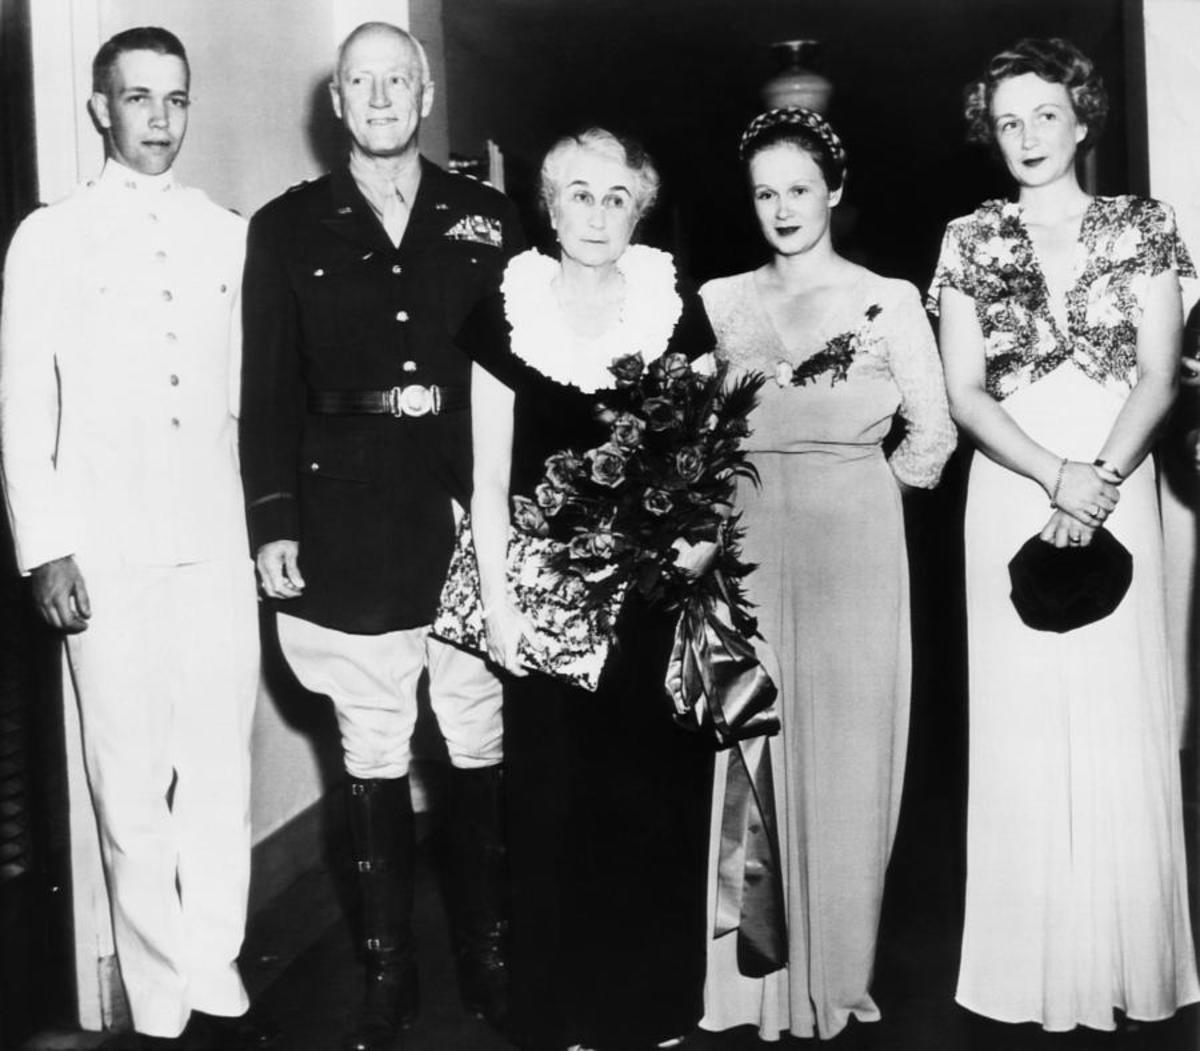 The Patton Family in 1945. L-R: George IV, Gen. Patton, Bea, Ruth Ellen and Bea Ayer (wife of John Waters). It would be their last time together. The General left for Europe a short time later.